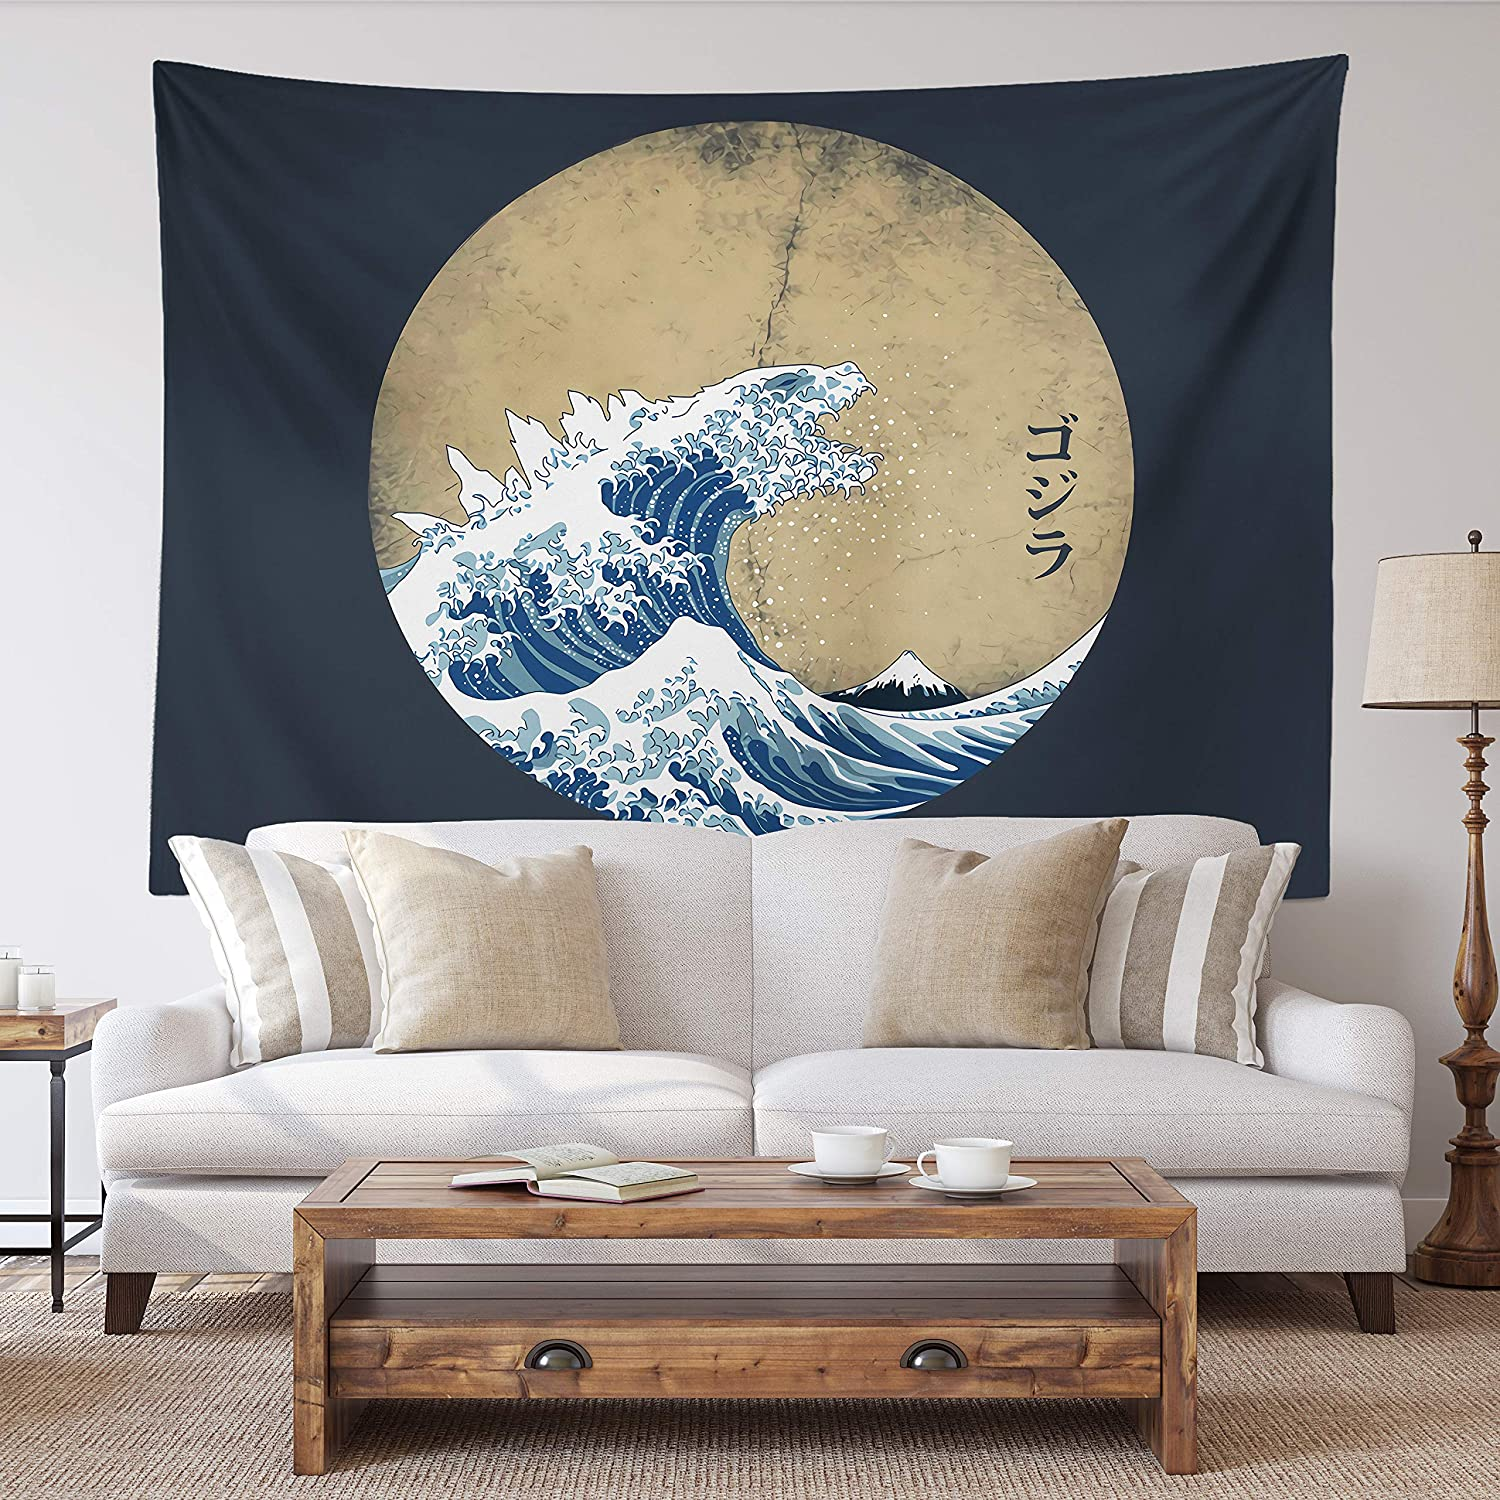 SPANKER SPACE Ukiyoe Blue and Navy Japanese Mythical Creature The Great Waves Godzilla Fabric Tapestry 59x79 inches Wall Hangings with Hanging Accessories for Home Dorm Wall Art Decor